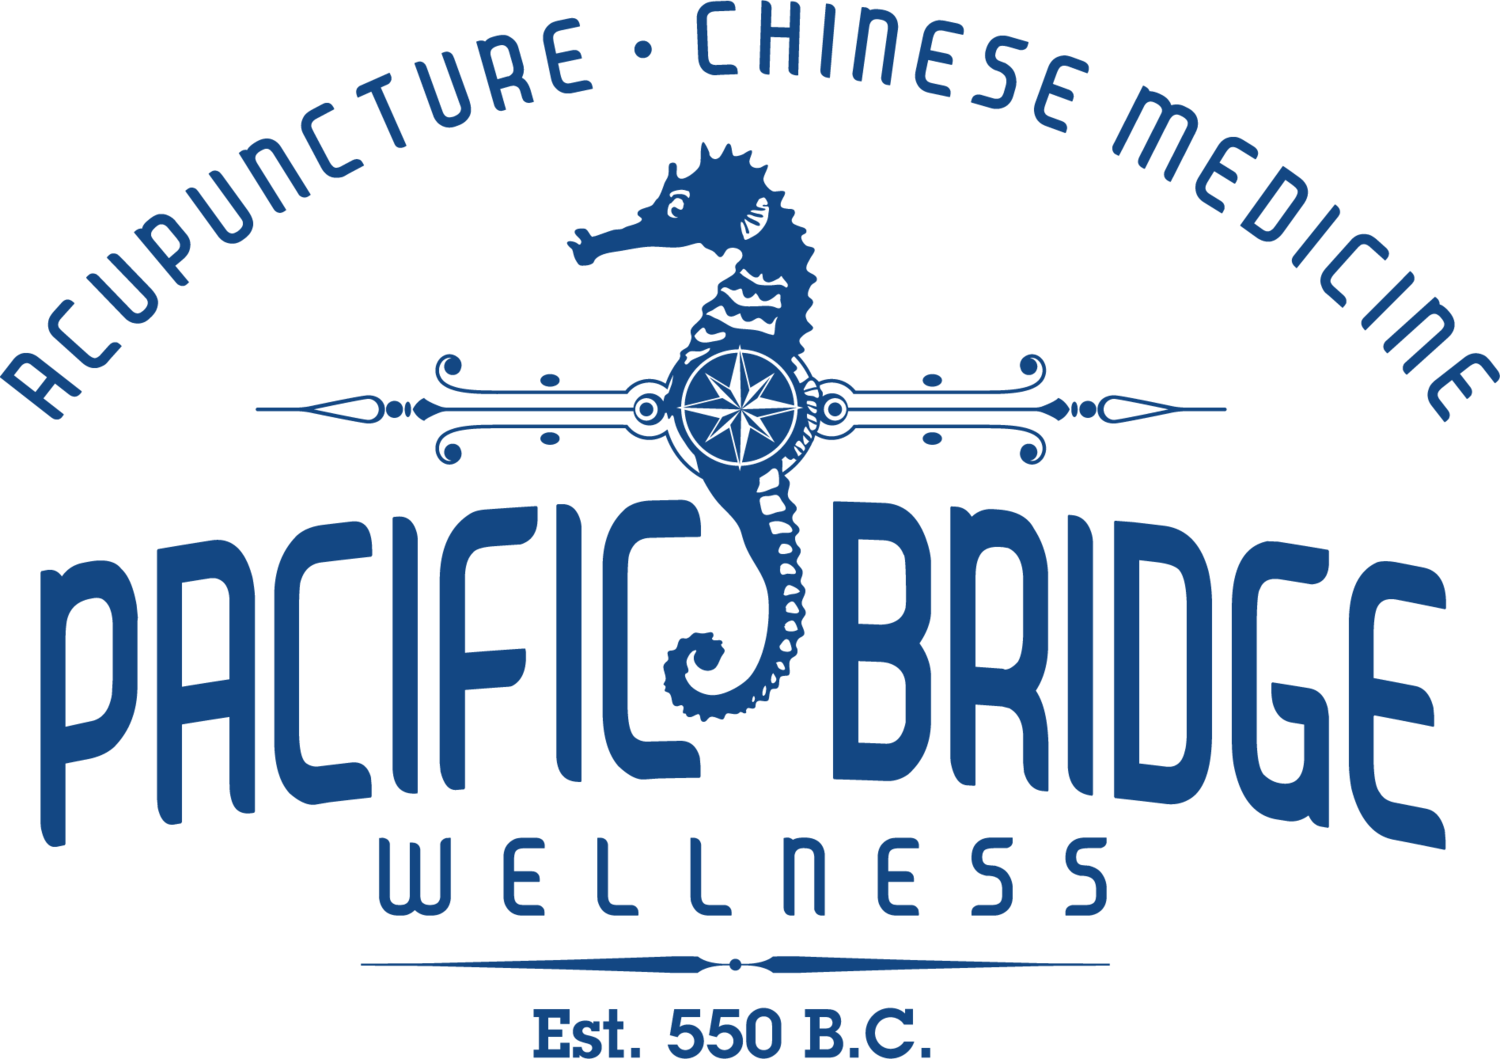 Pacific Bridge Wellness | Acupuncture & Chinese Medicine